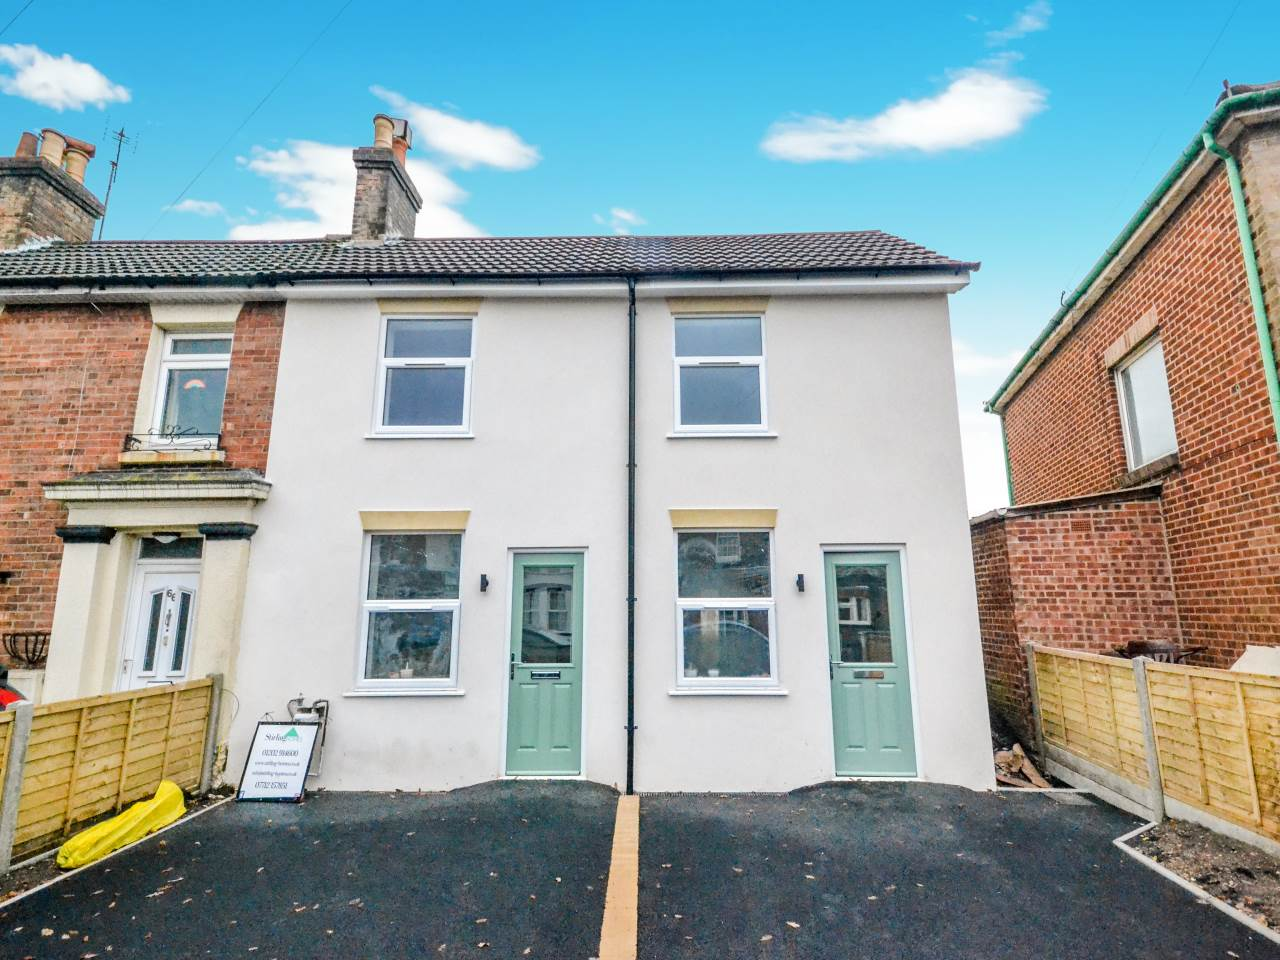 2 bed terraced house for sale in Bournemouth, BH1